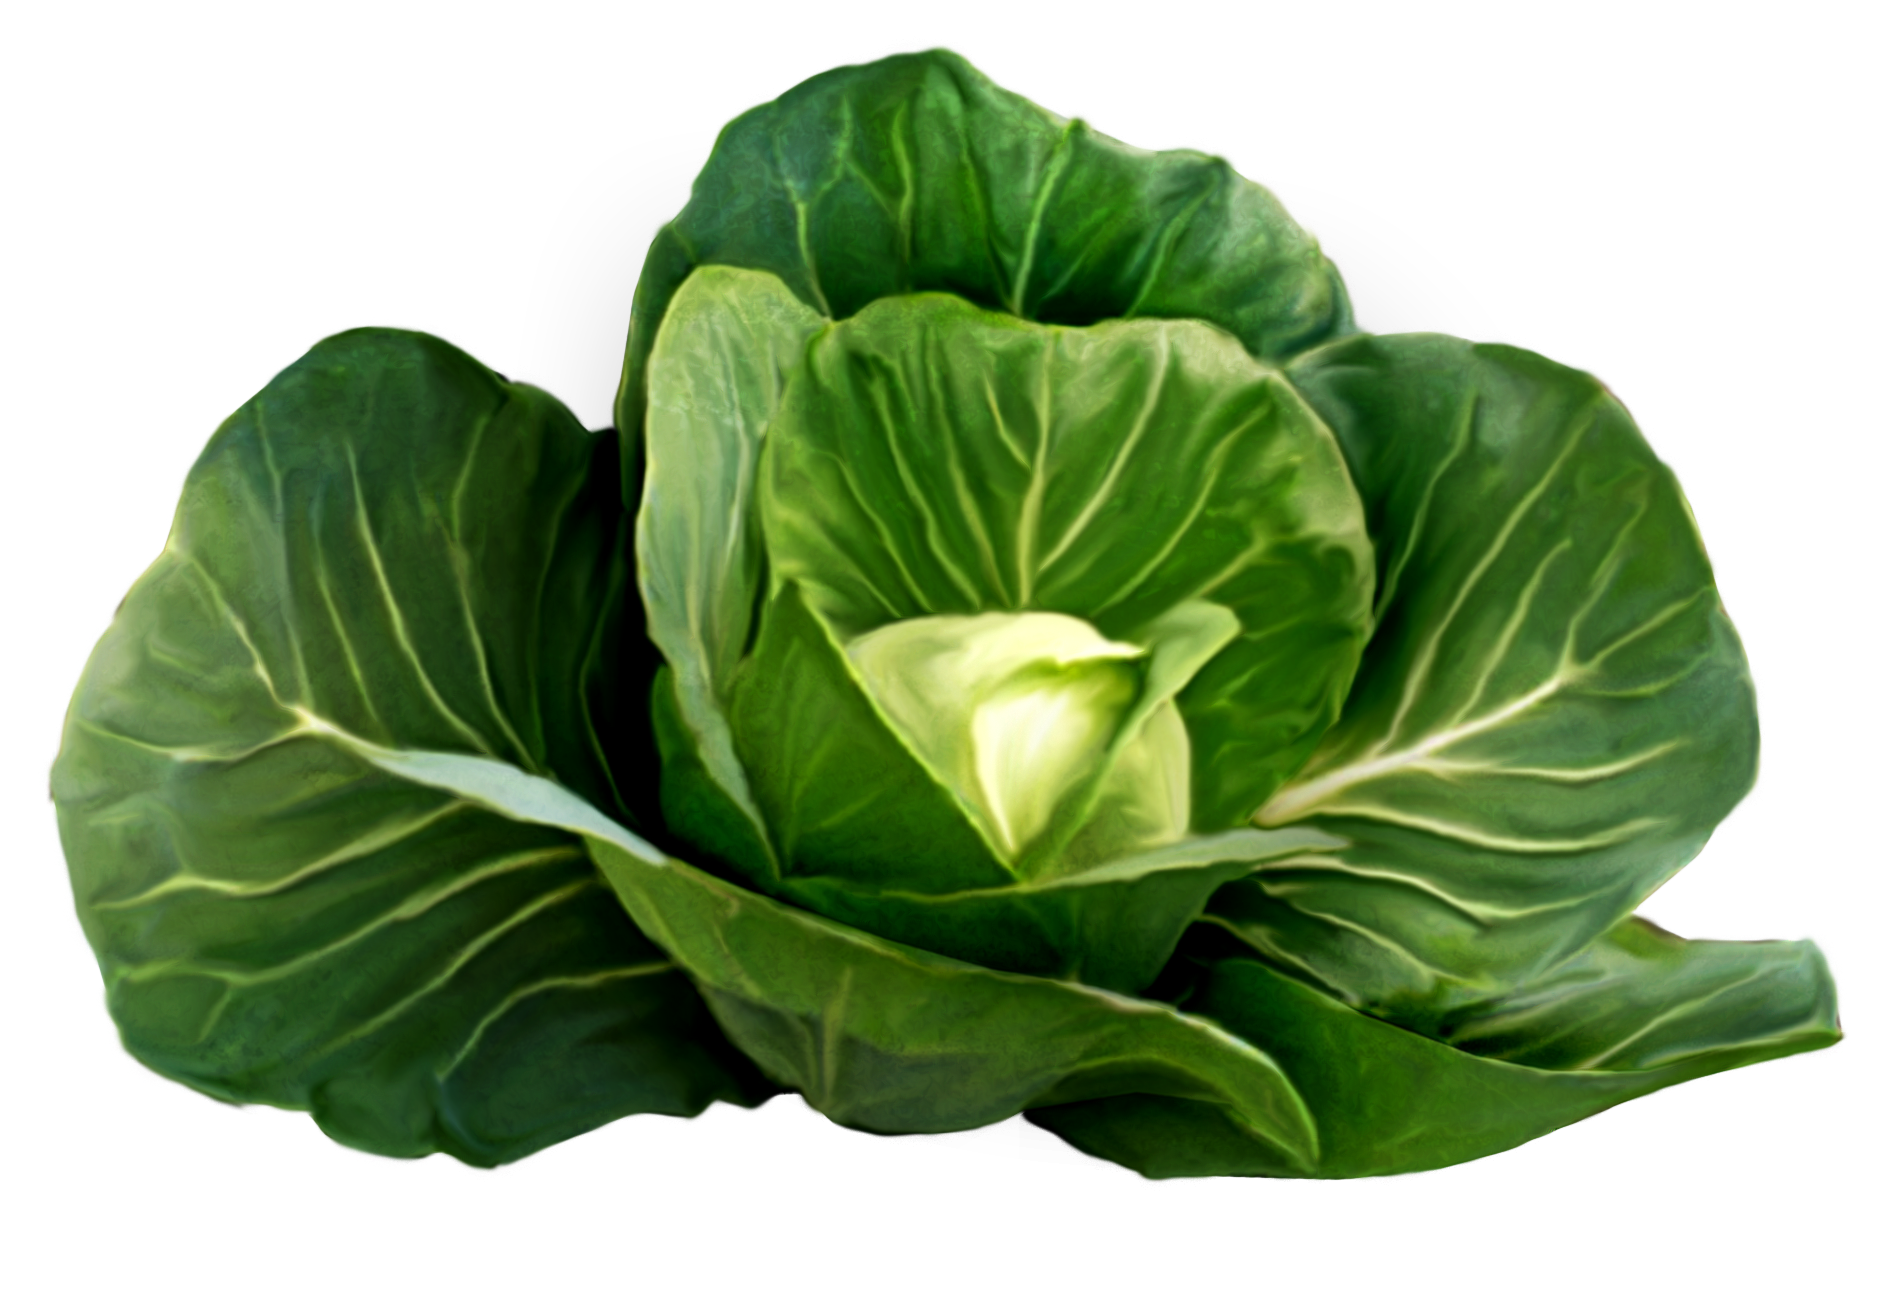 Clipart vegetables cabbage. Picture gallery yopriceville high